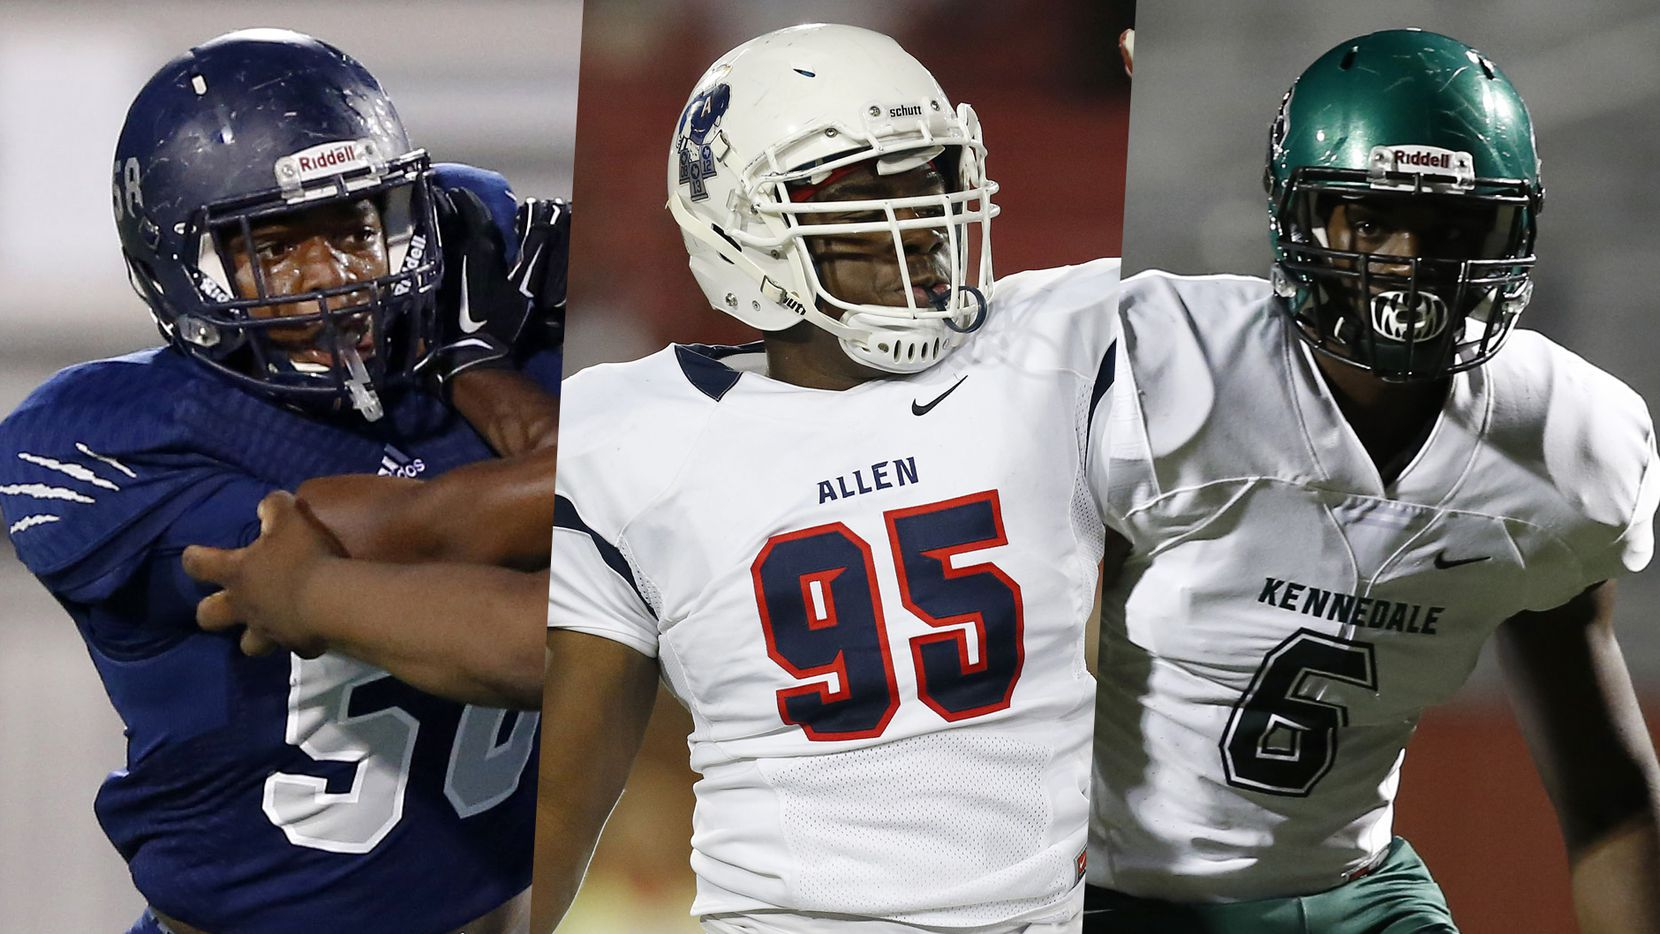 Fro left to right: Carrollton Ranchview's Dayo Odeyingbo, Allen's Levi Onwuzurike and Kennedale's Baron Browning.